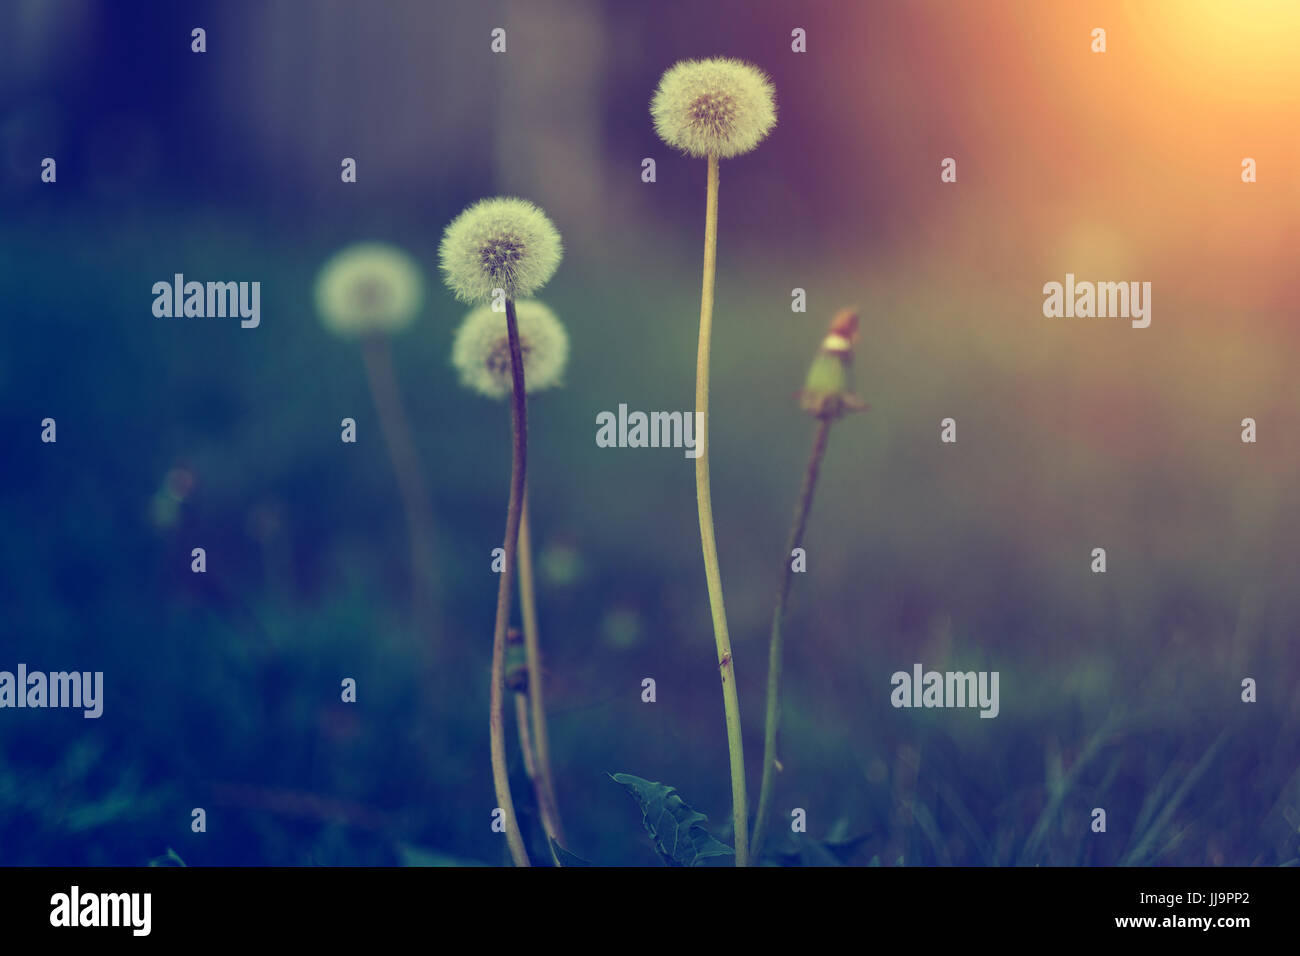 Dandelion flower in sunset. This image is exclusive for Alamy only - Stock Image